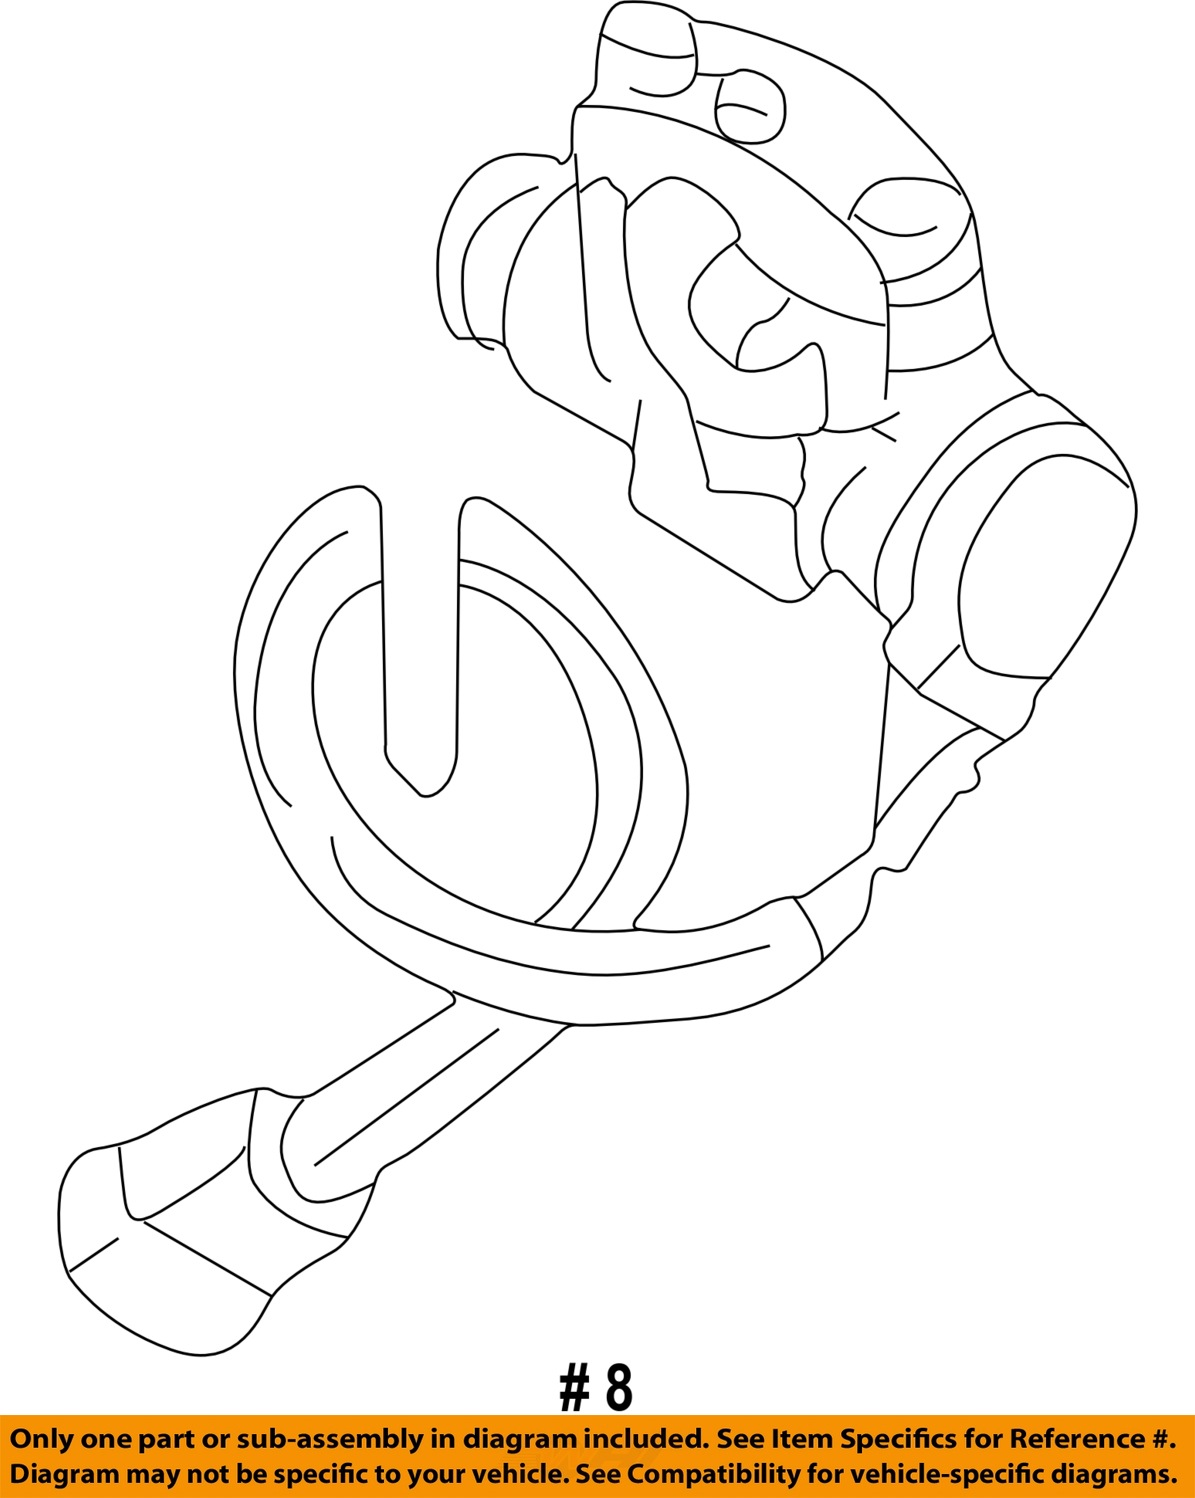 Land rover oem 99 01 discovery steering column ignition lock qrf000080h